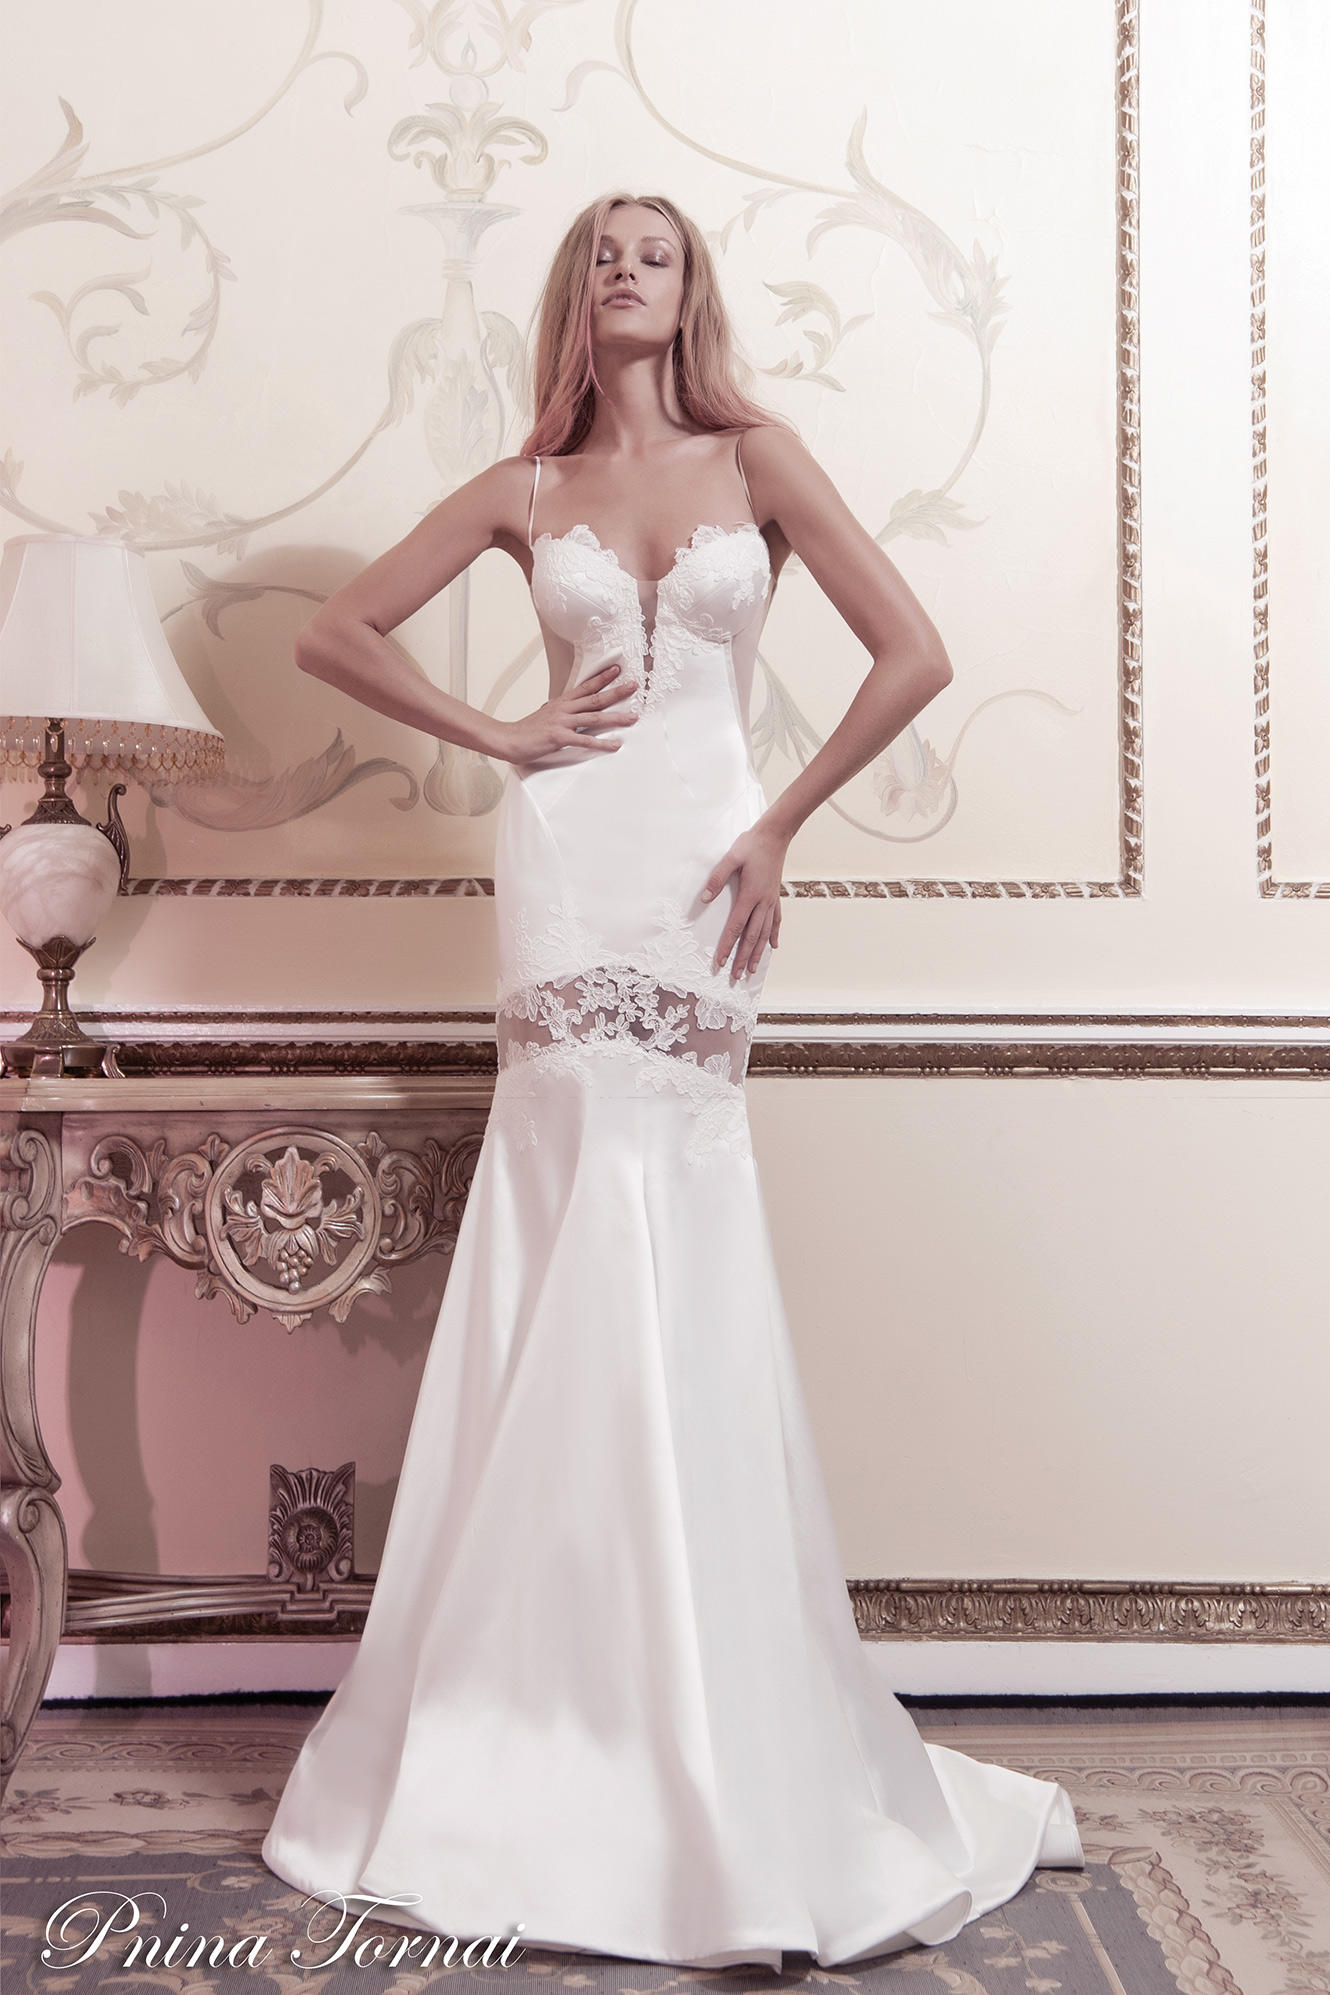 pnina tornai butterfly inspired bridal collection say yes to the